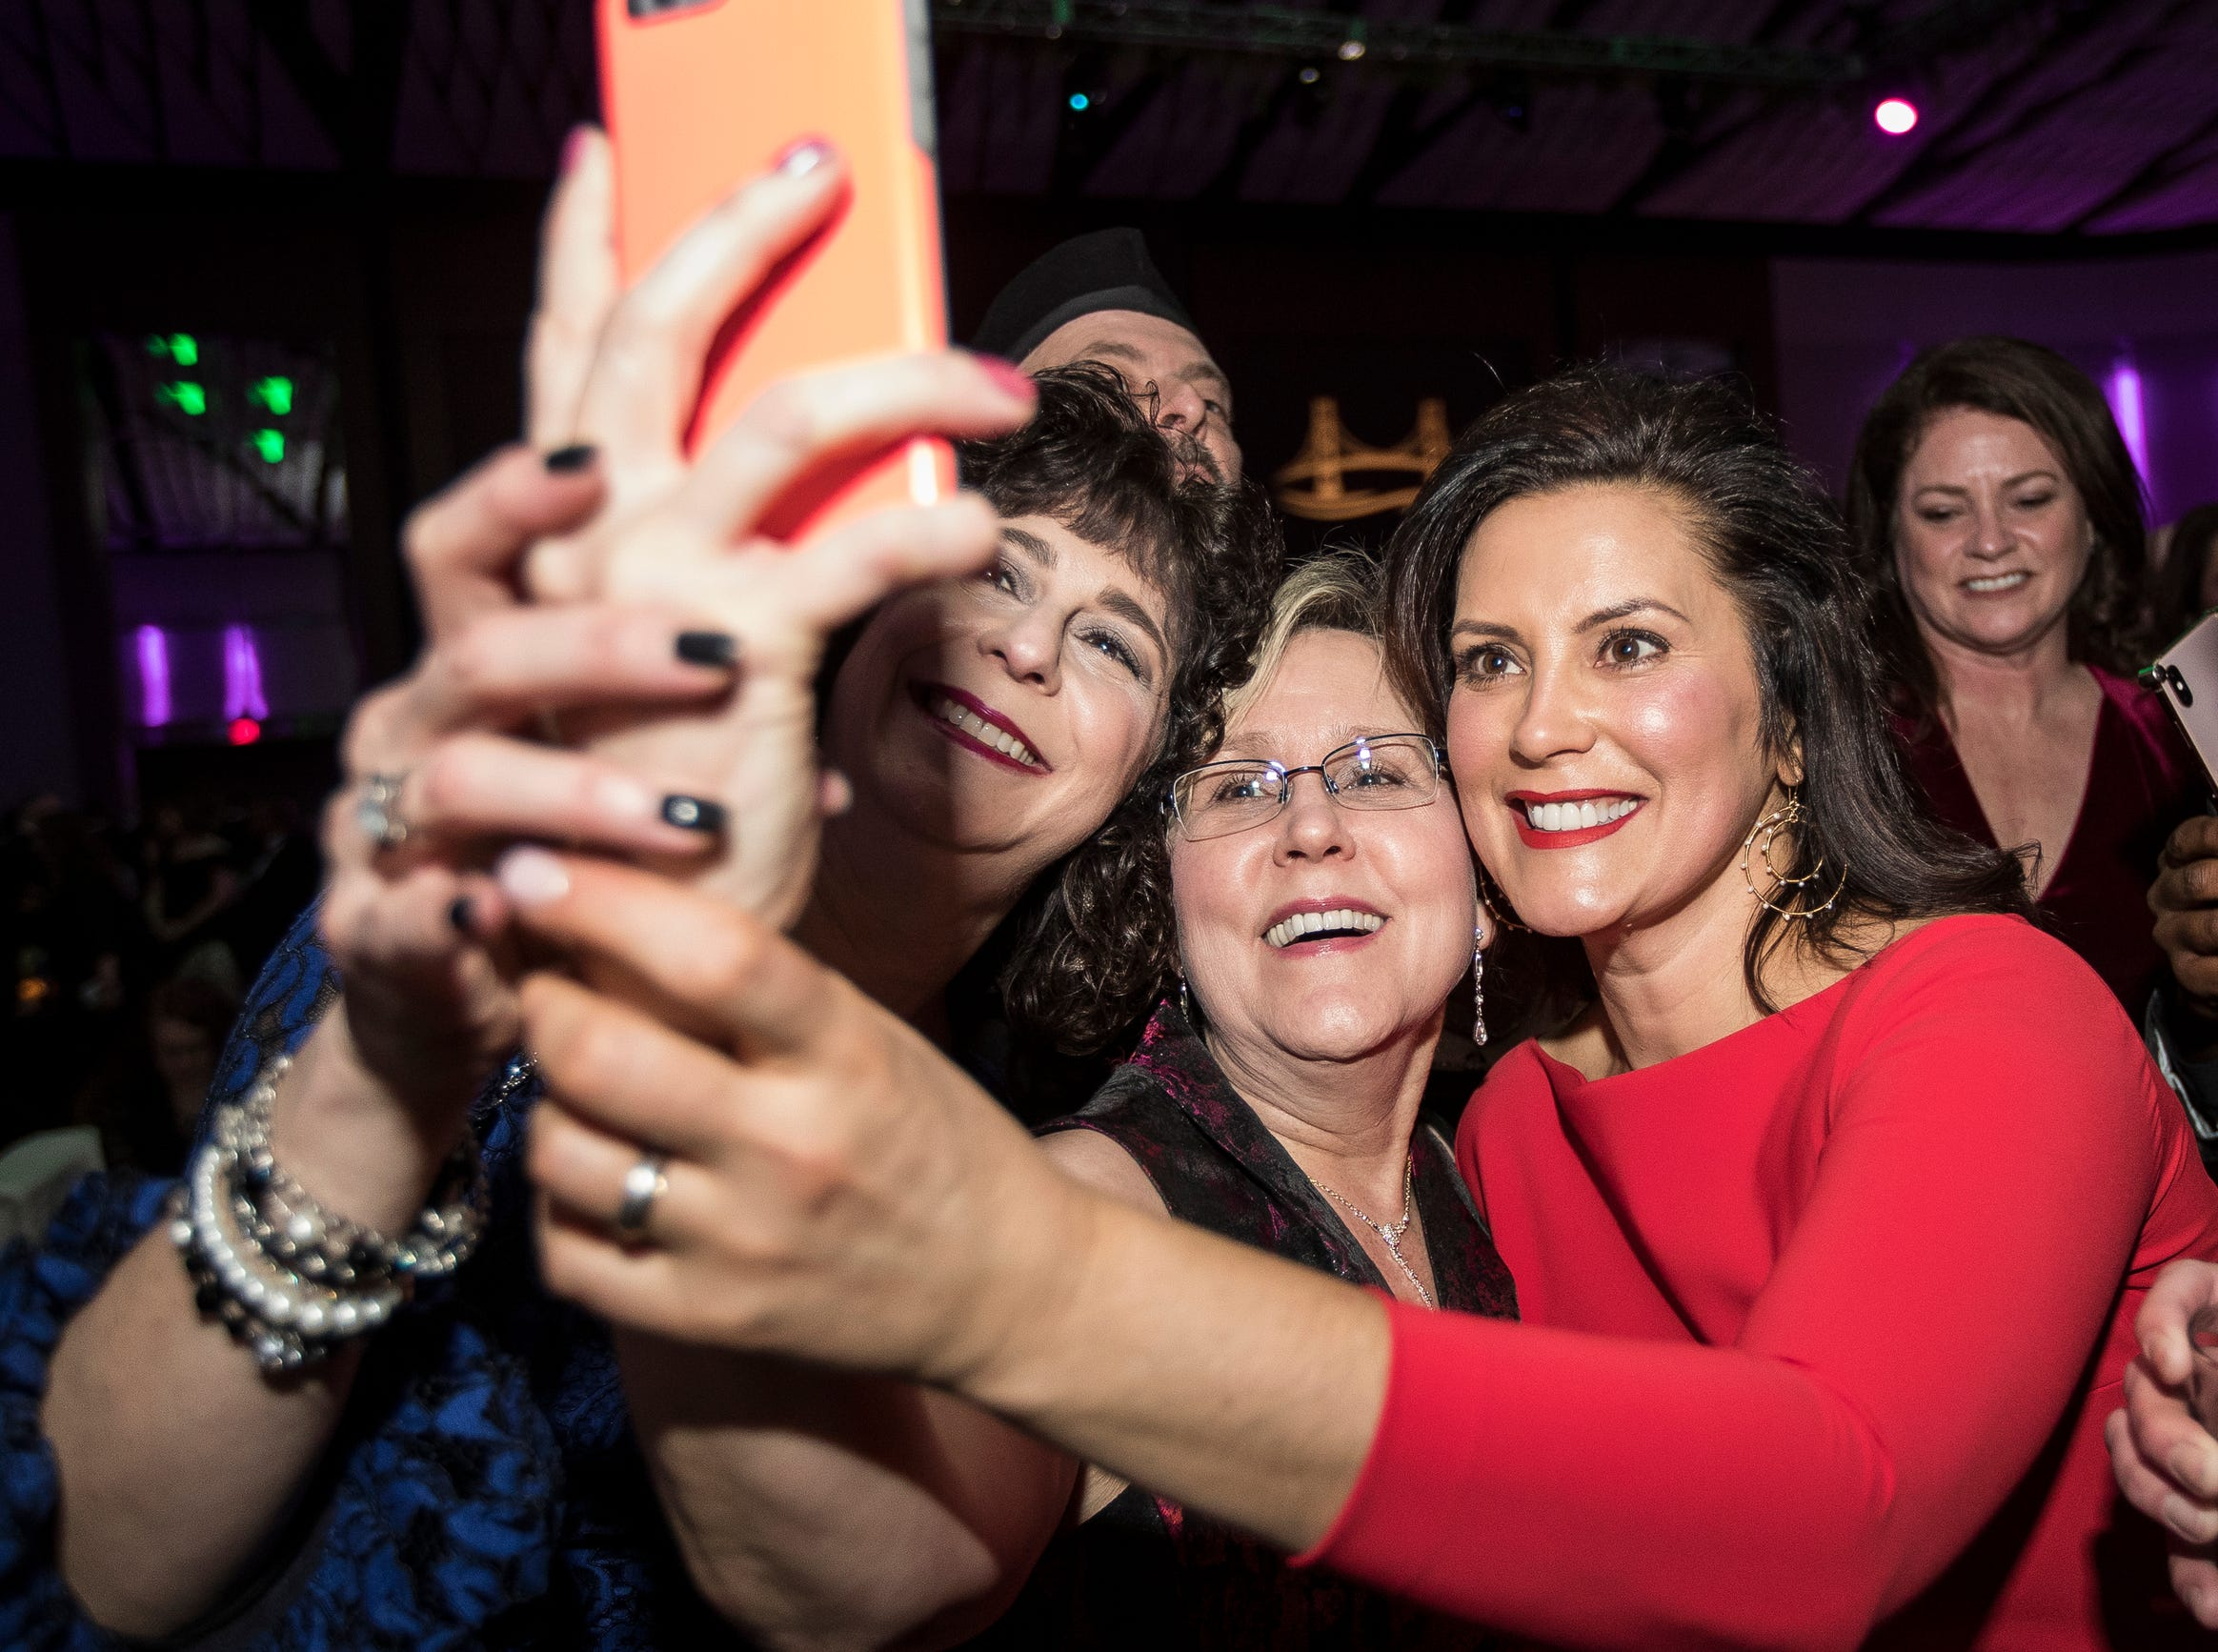 Governor Gretchen Whitmer takes a selfie with Lisa Zimmer of Northville, left, and Laura Humphries of Plymouth during the inaugural ball at Cobo Center in Detroit on Tuesday, Jan. 1, 2019.